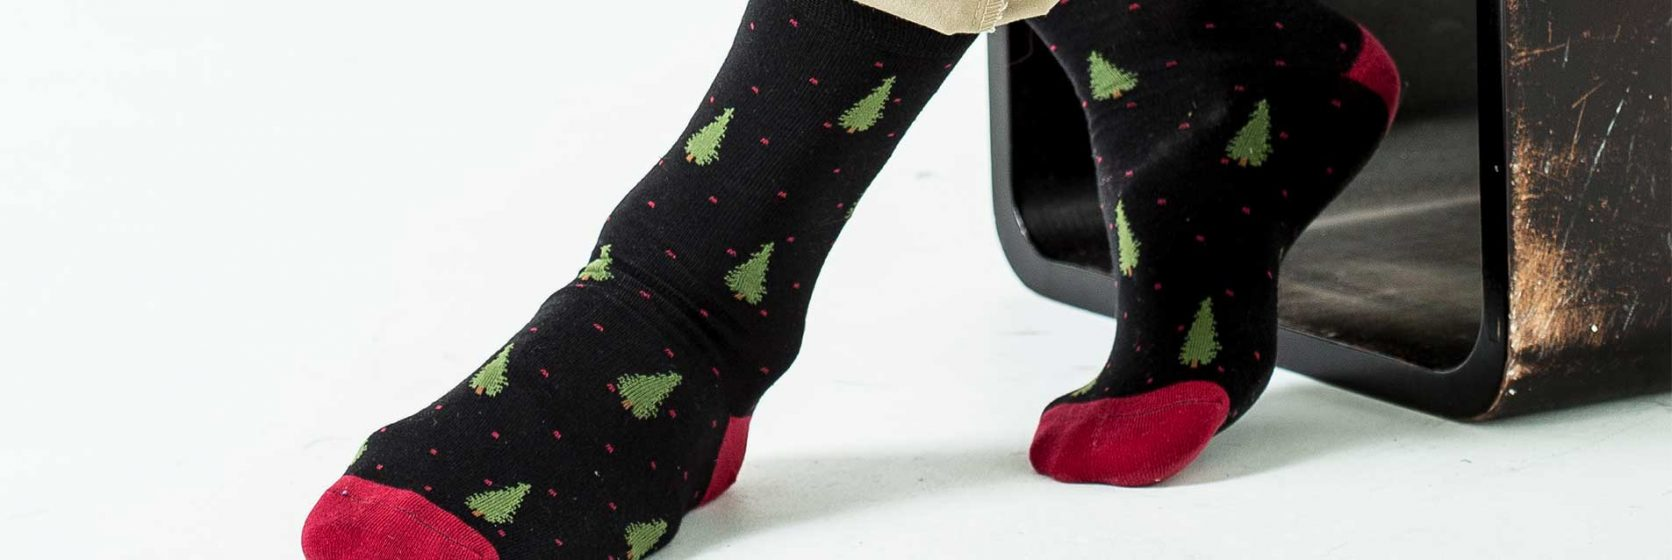 WildFeet Men's Tree Socks